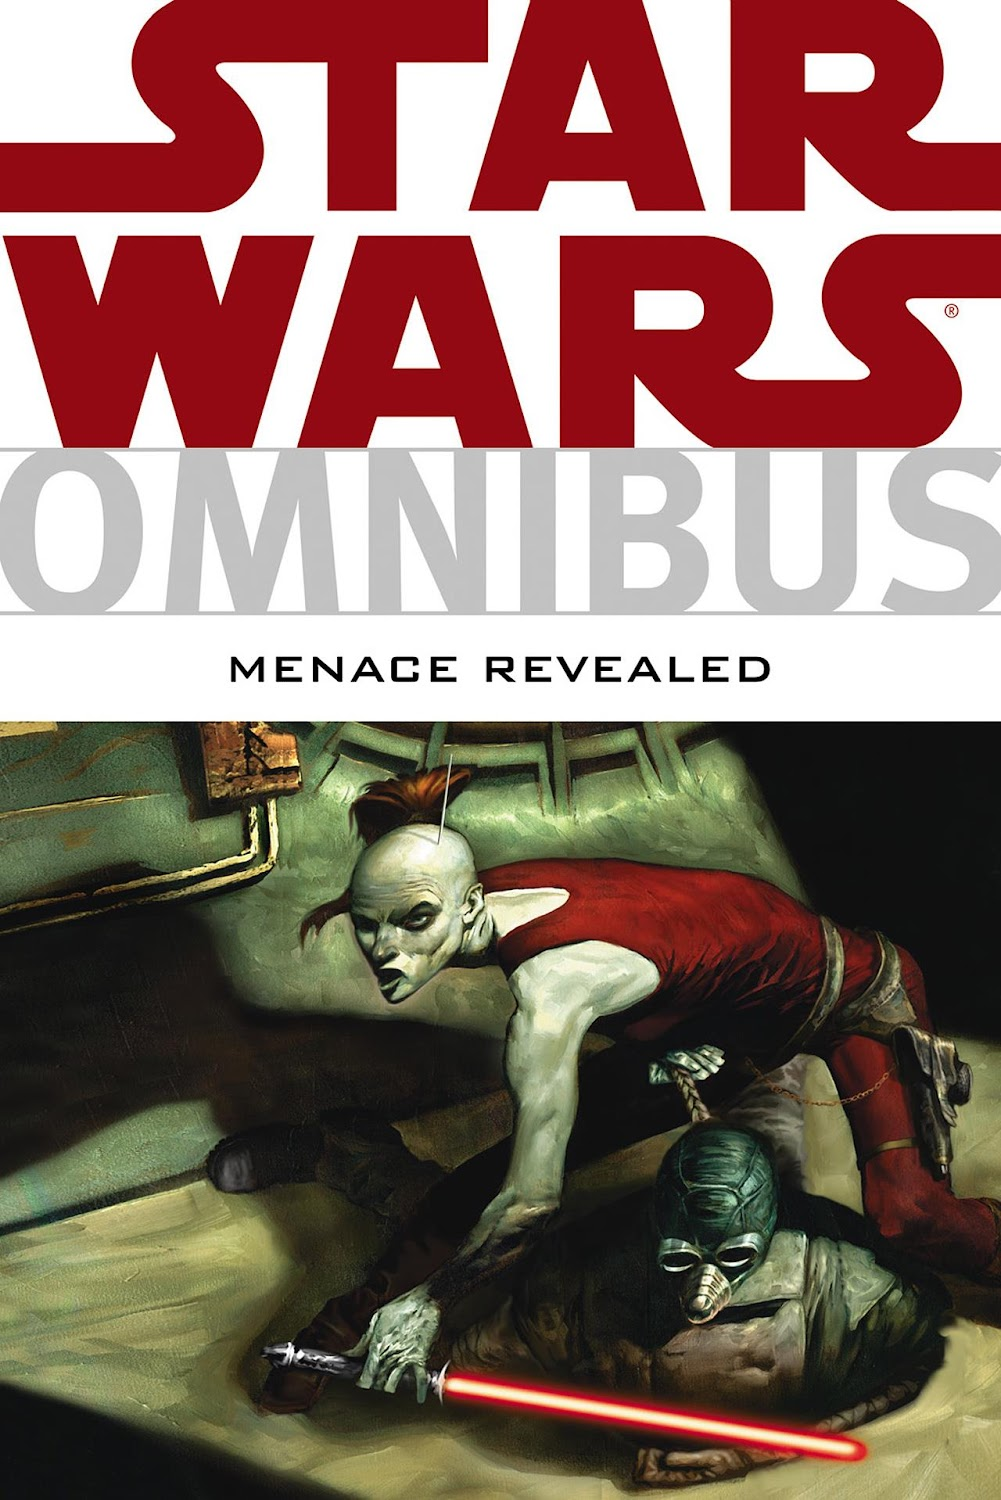 Star Wars Omnibus - Menace Revealed (2009)